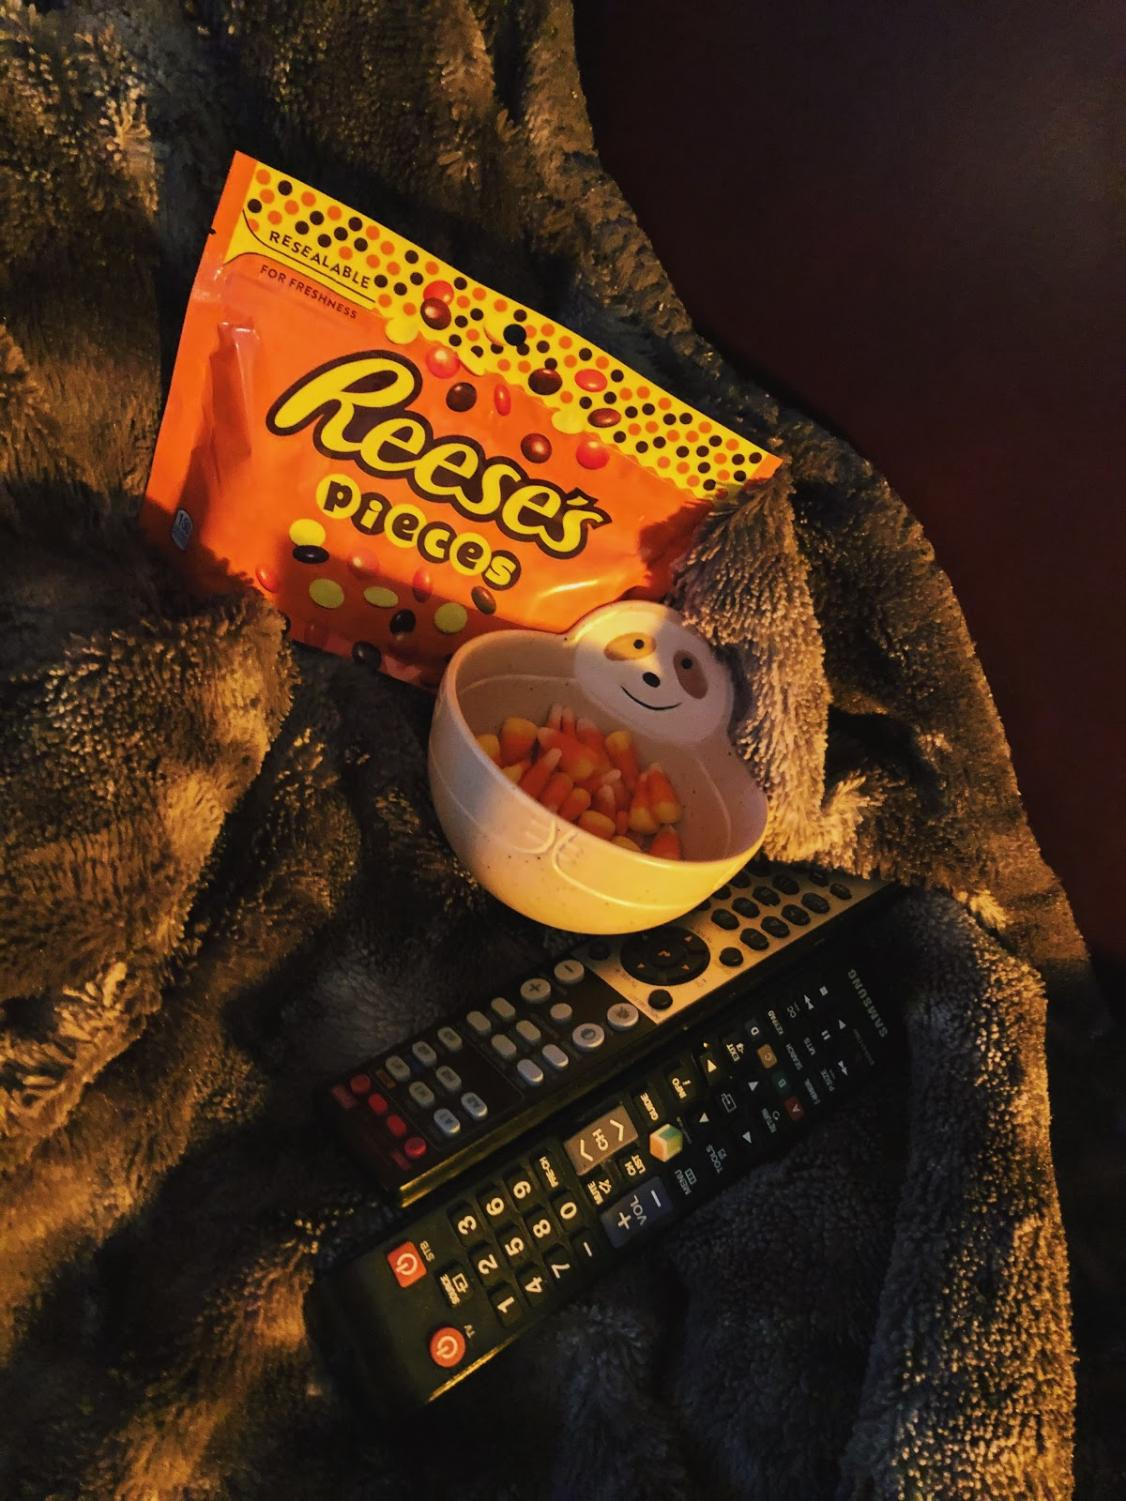 Find a Halloween movie to watch, grab some candy, and enjoy.